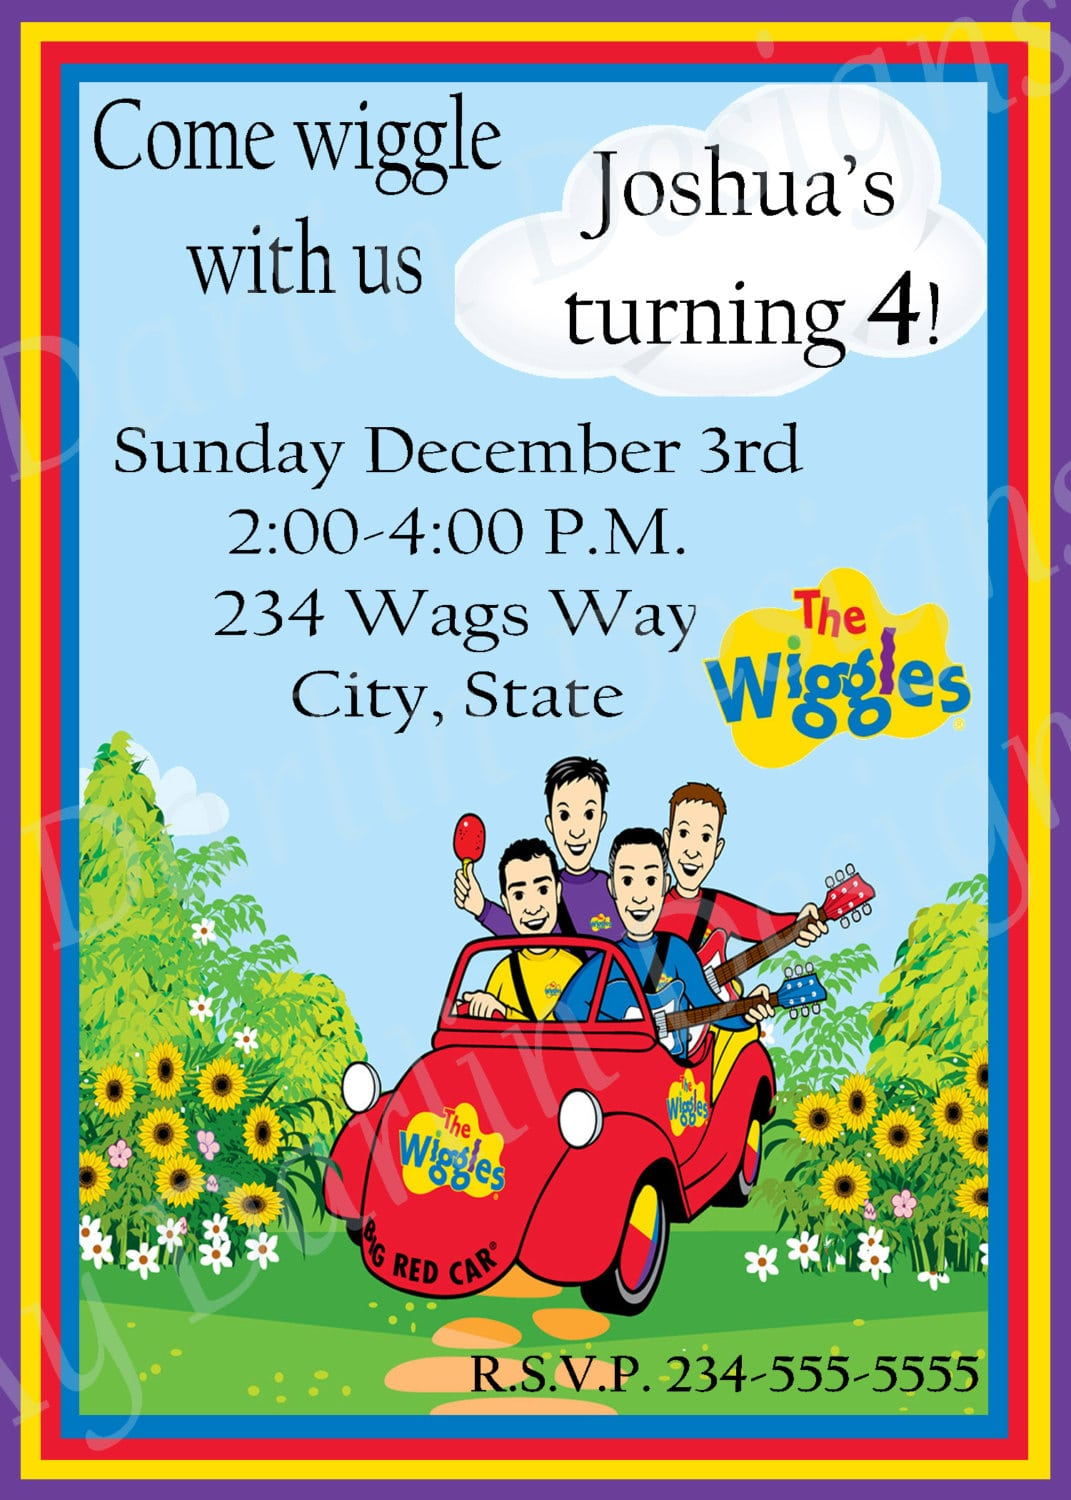 The Wiggles Digital Invitation By Mydarlindesigns On Etsy, $6 00